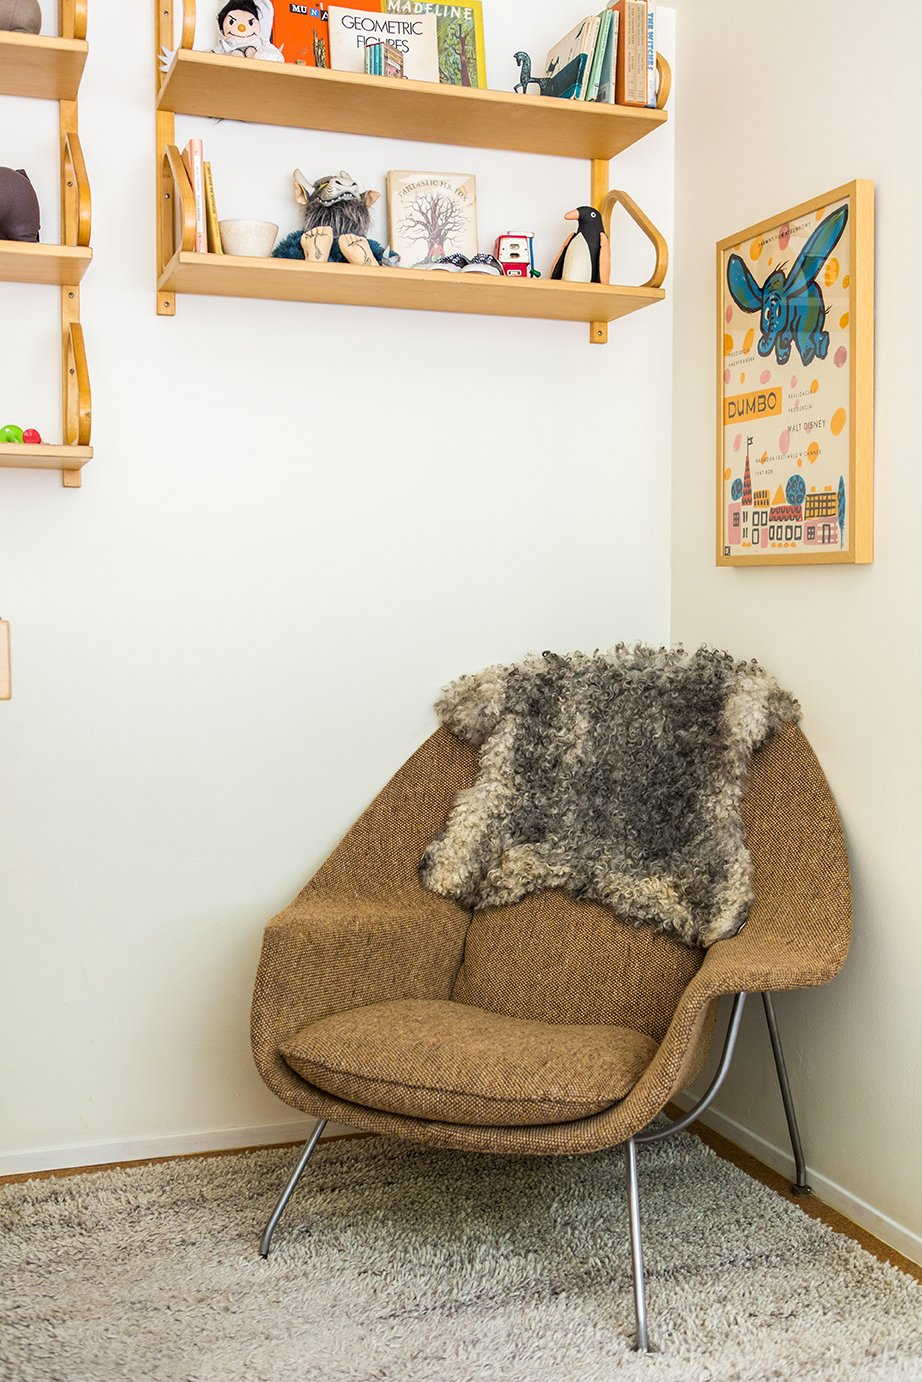 In daughter Elliot's room, a vintage Womb chair by Eero Saarinen is situated below Alvar Aalto 112 sheIn daughter Elliot's room, a vintage Womb chair by Eero Saarinen is situated below Alvar Aalto 112 shelving scored on eBay. In Search of Alvin Lustig - Photo 9 of 14